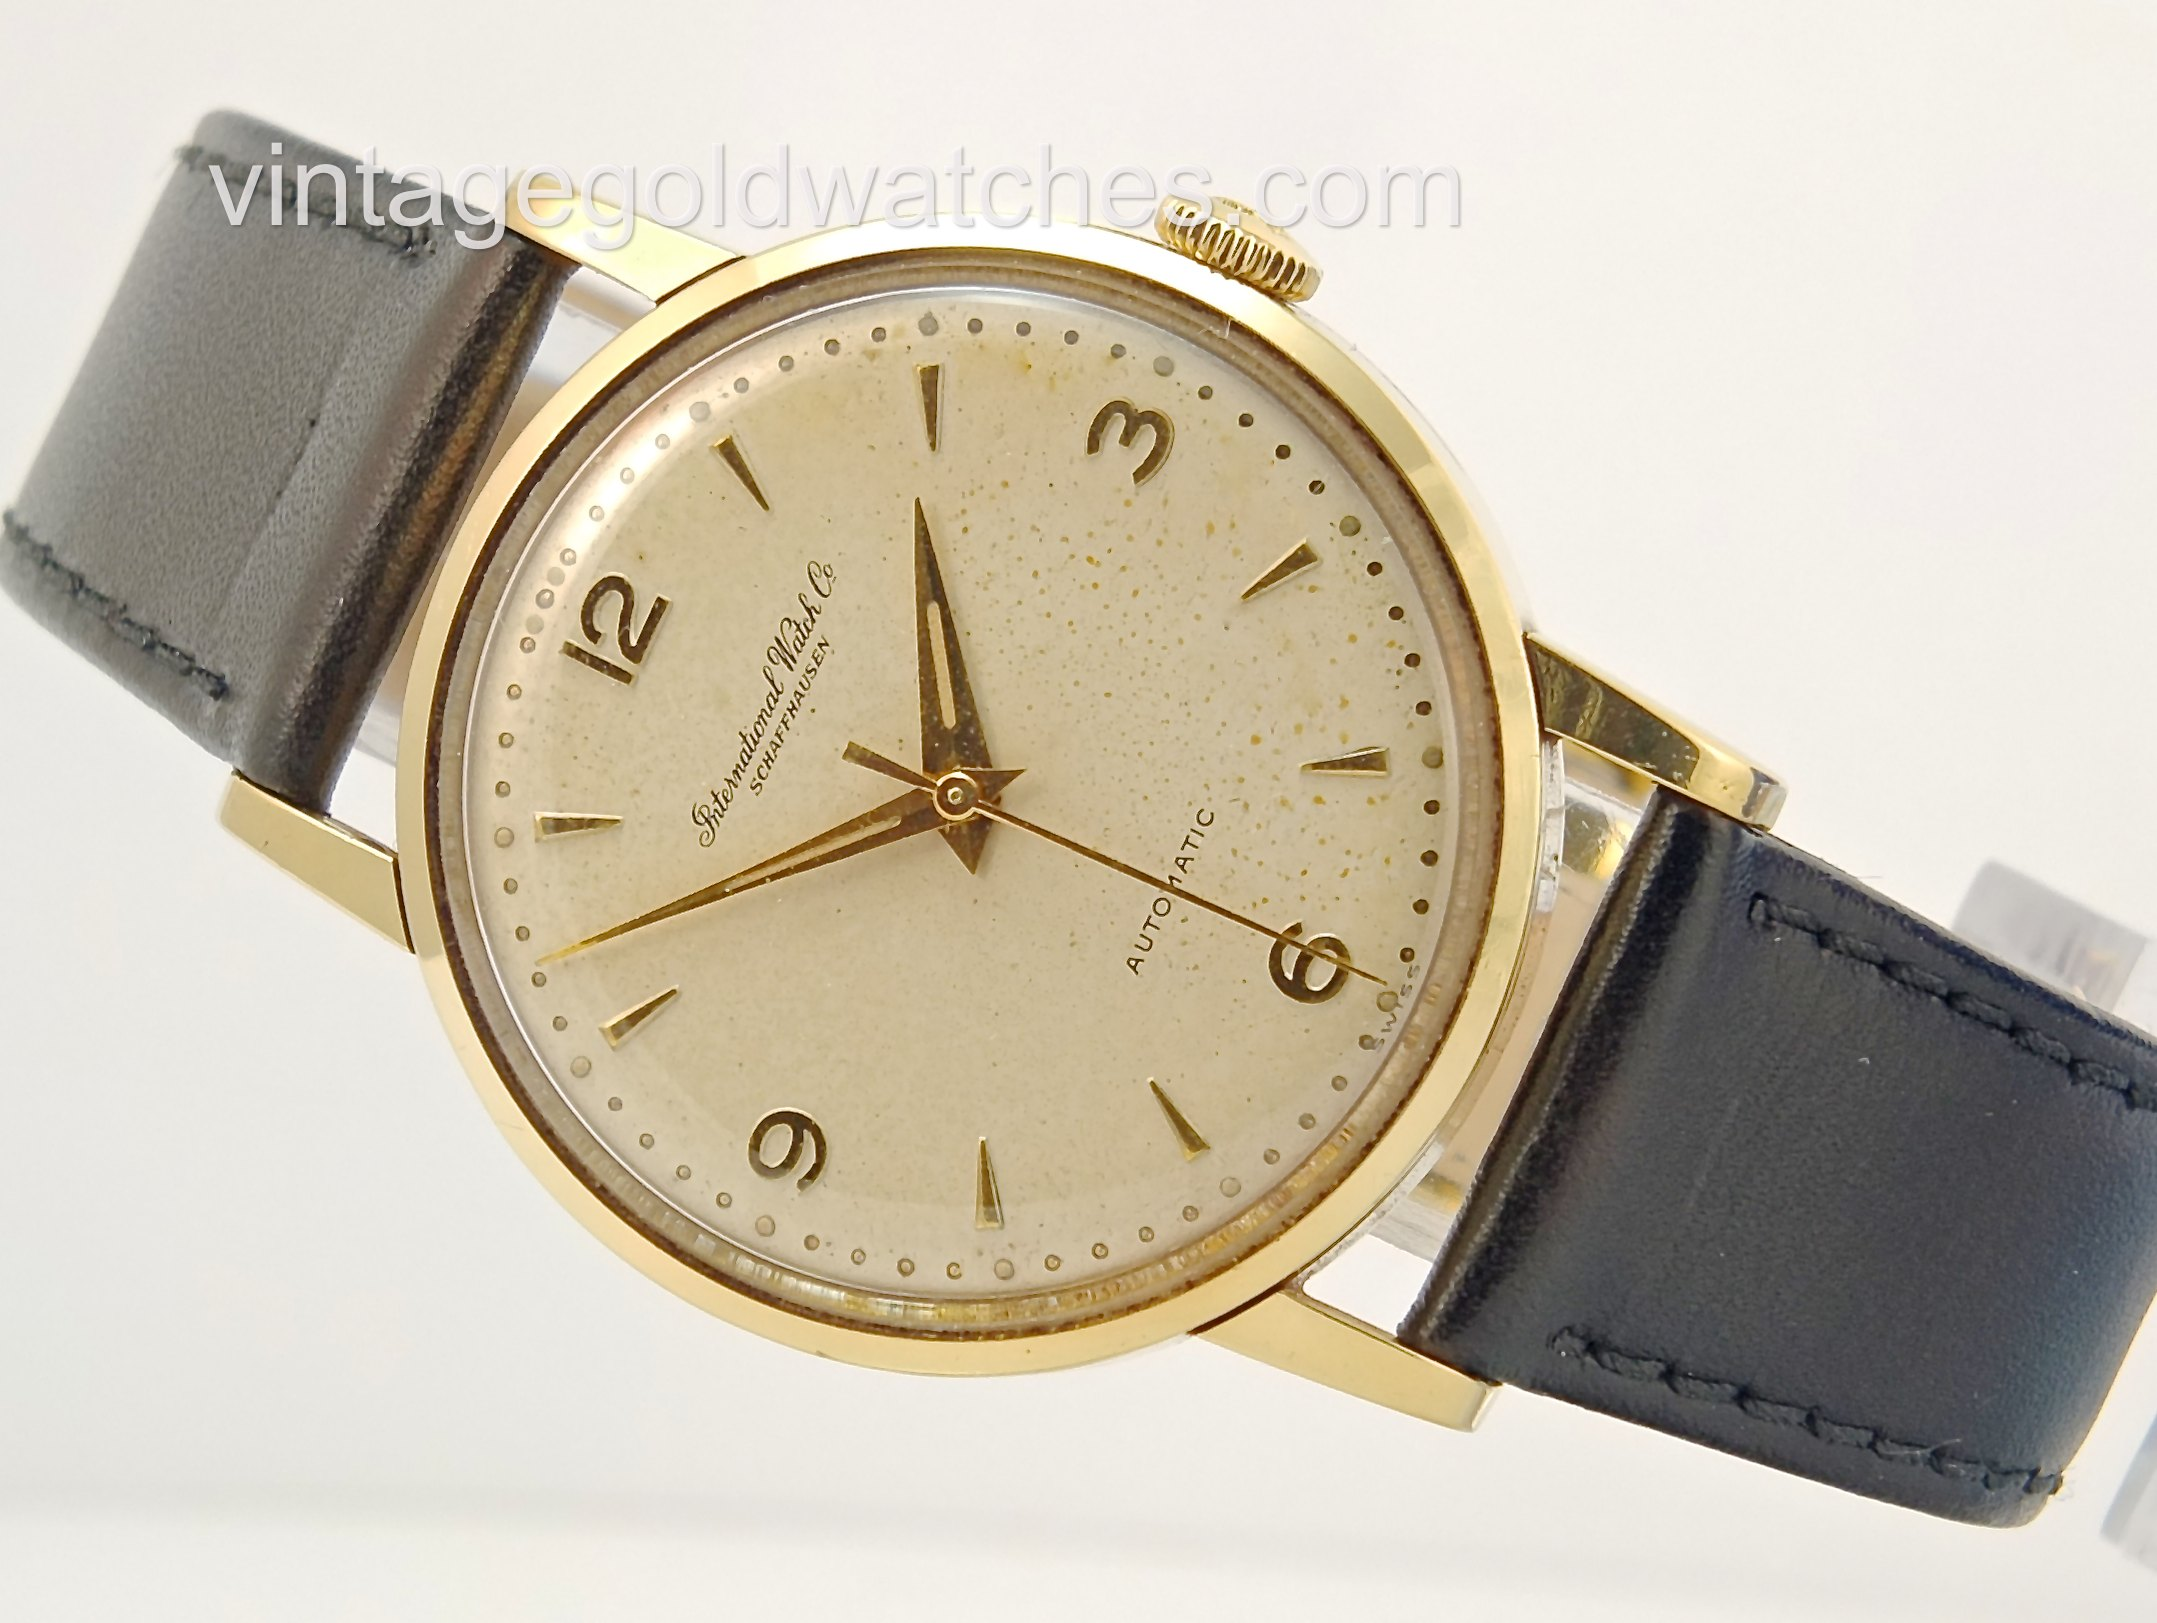 iwc watch gold brown product watches schaffhausen leather icw on